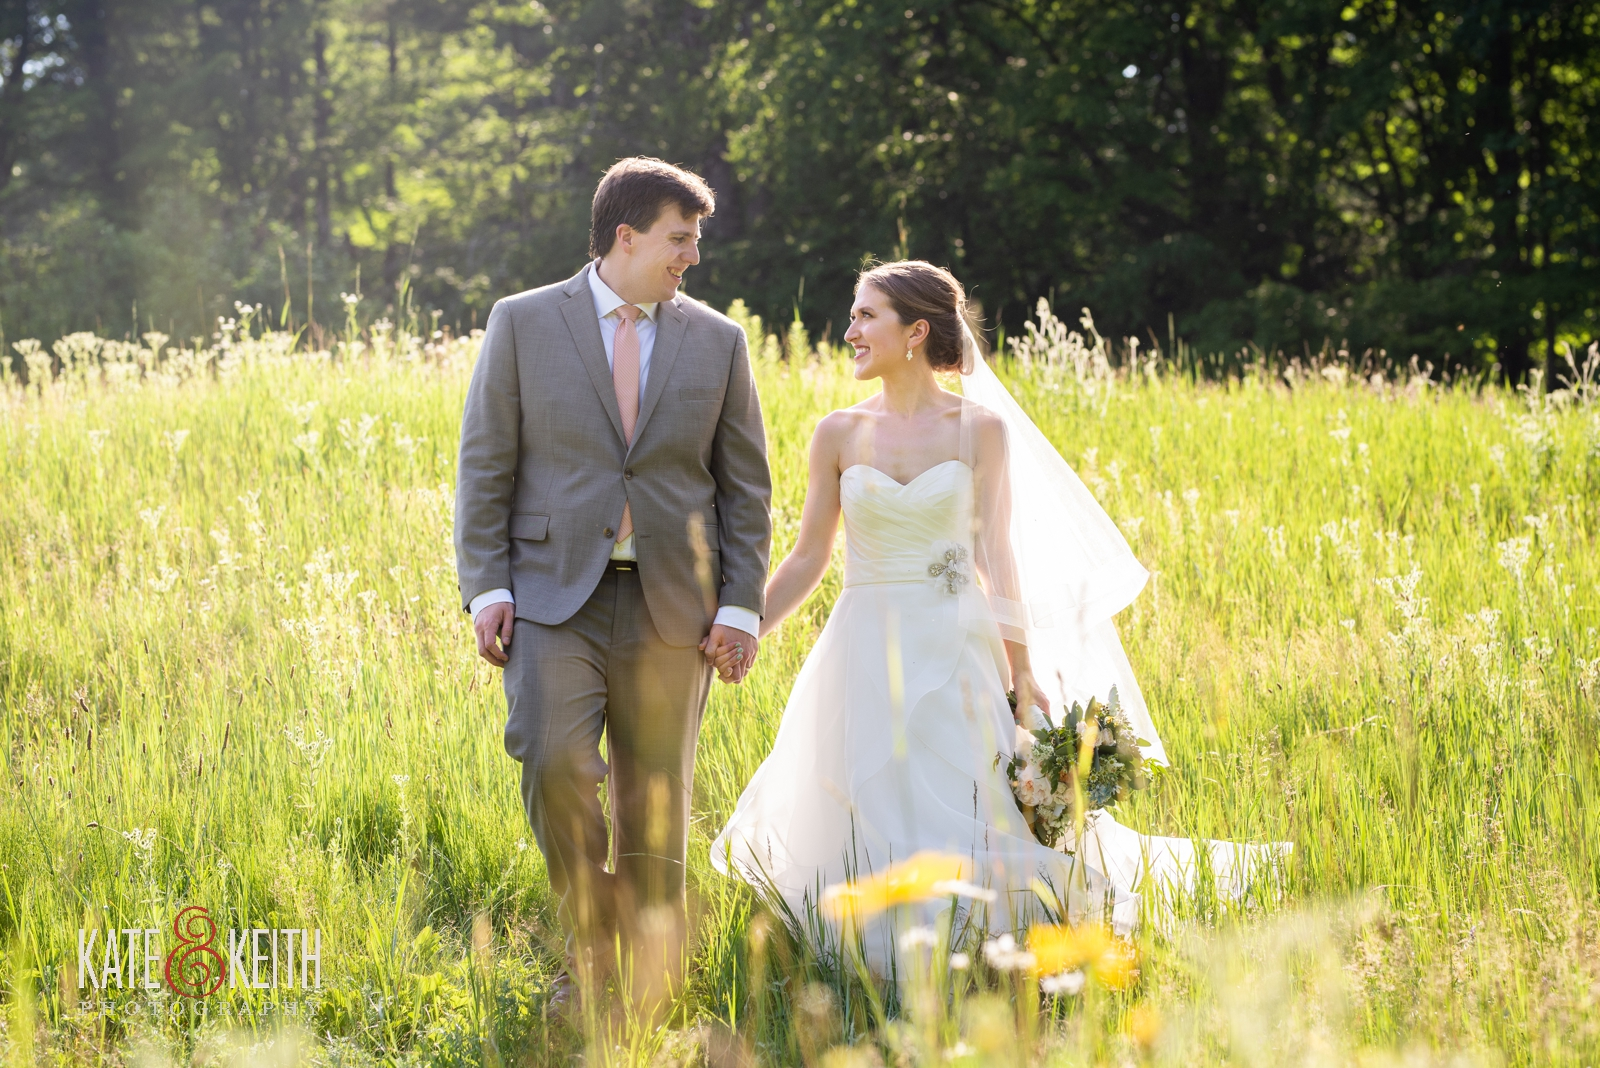 wedding photos tall grass informal outdoor June wedding Vermont